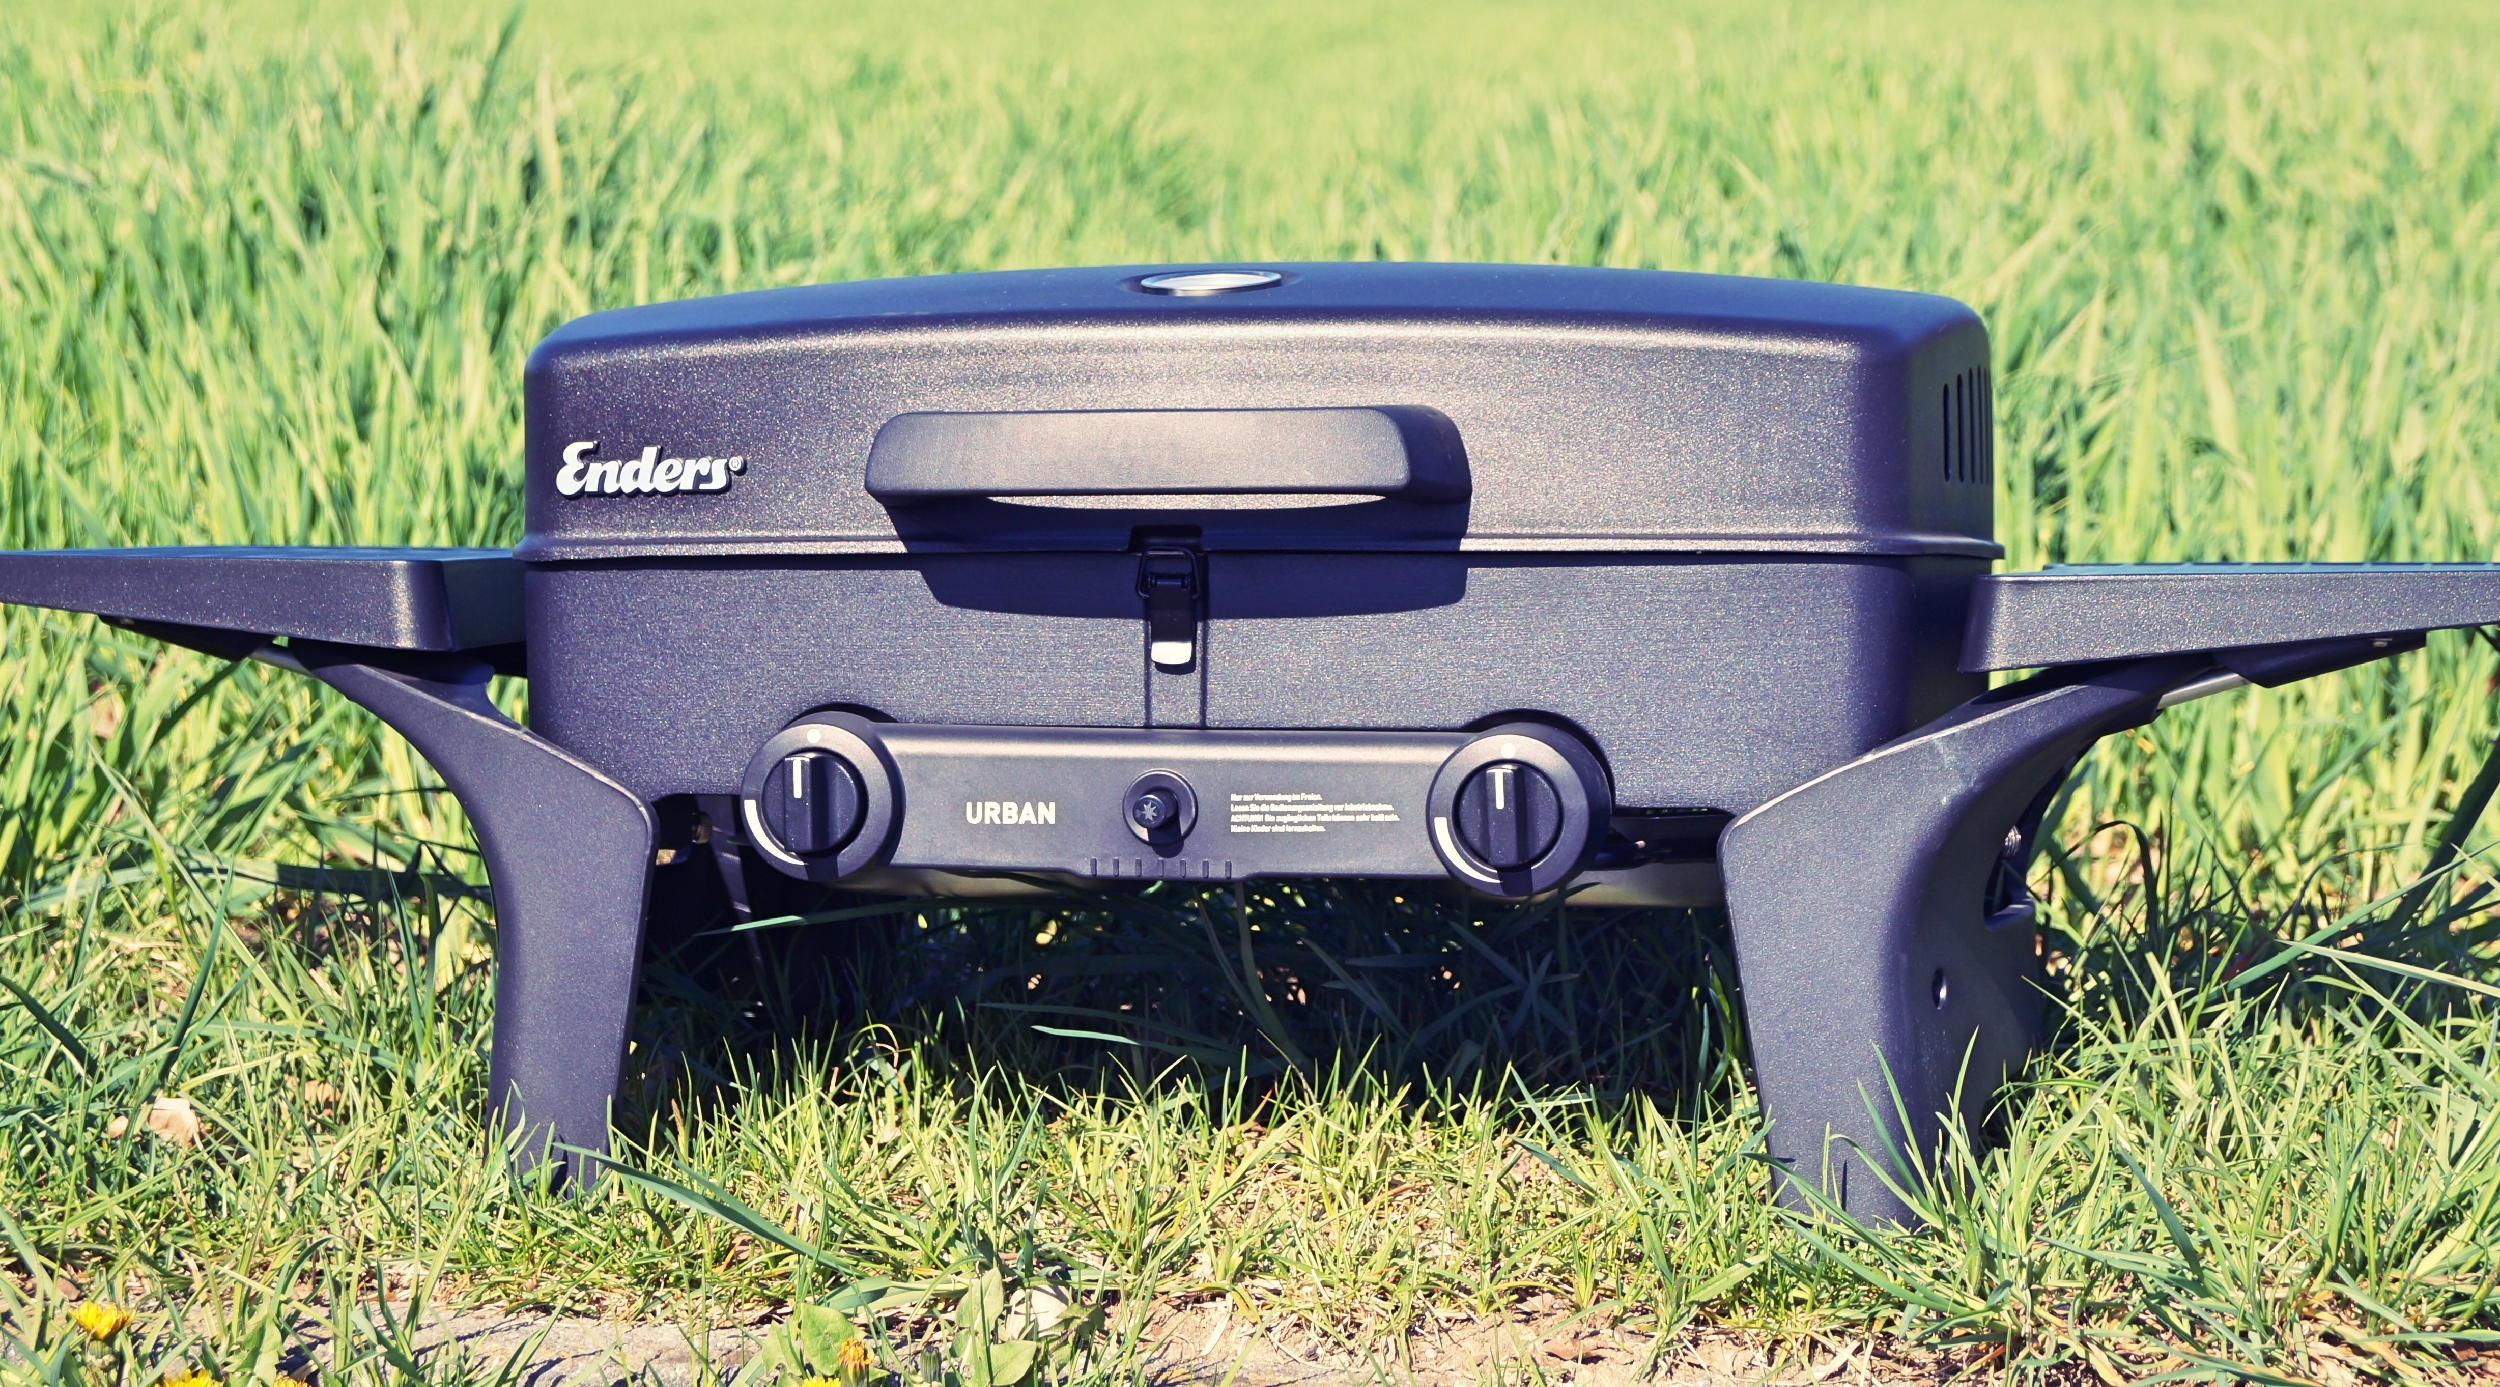 Enders Gasgrill Camping : Enders urban grill ein erster praxistest